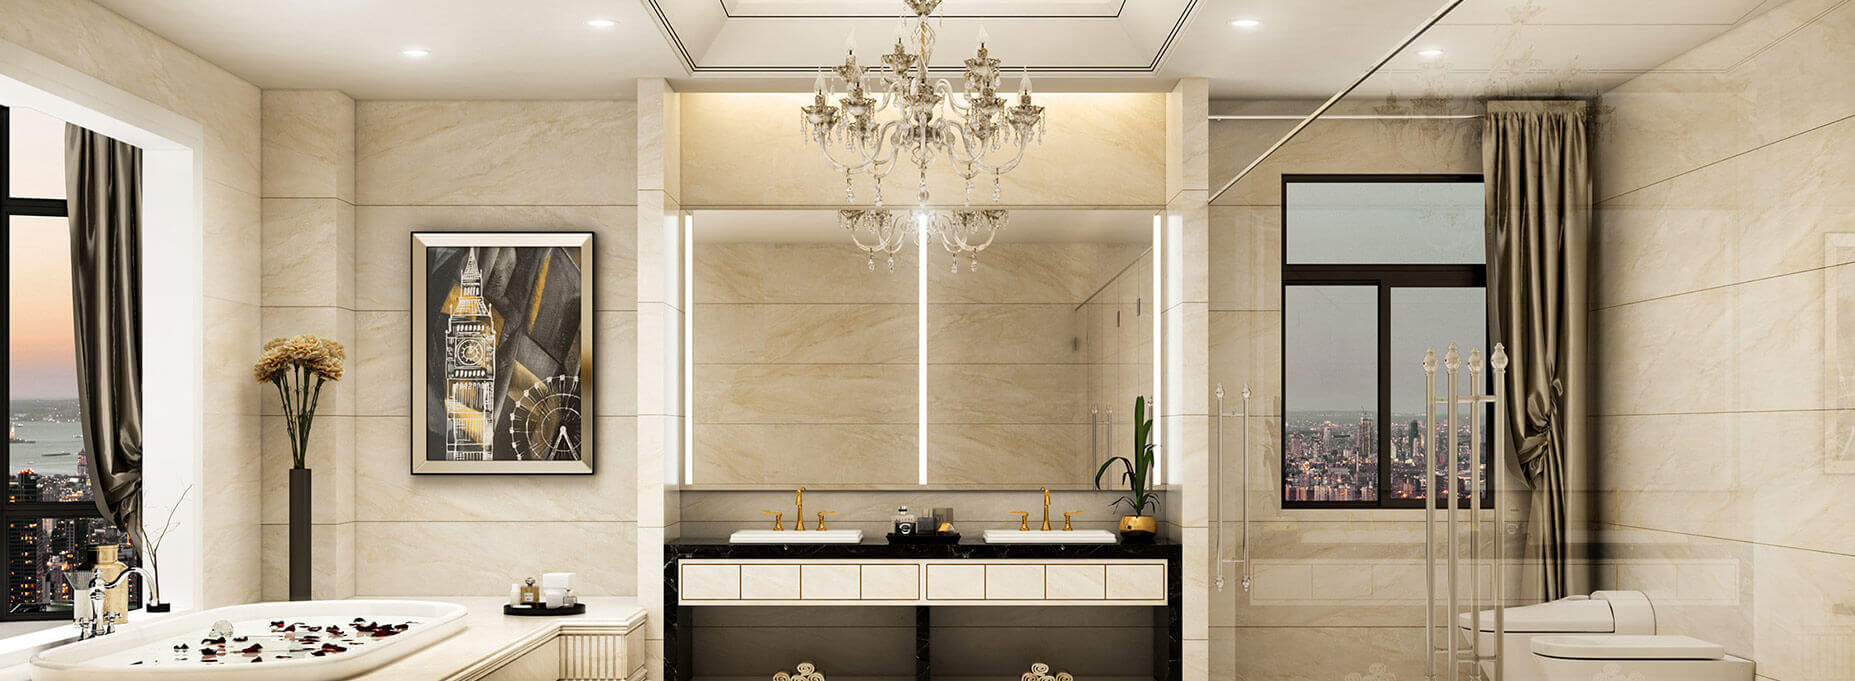 Two lighted mirrors in the center of a bathroom boasting its very sophisticated interior overlooking the city.